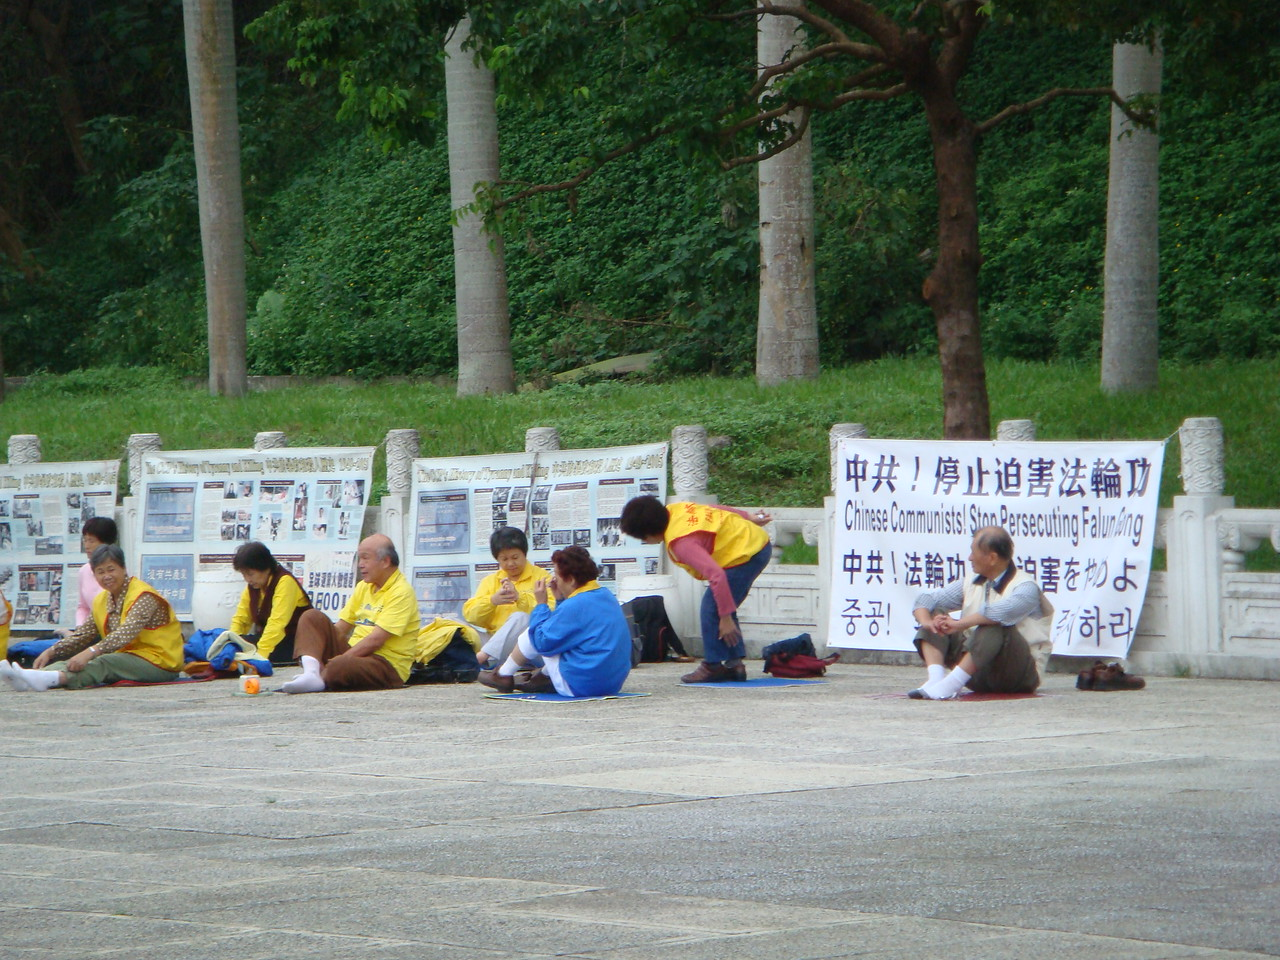 Falun Gong protesters sitting next to signs - Taipei, Taiwan